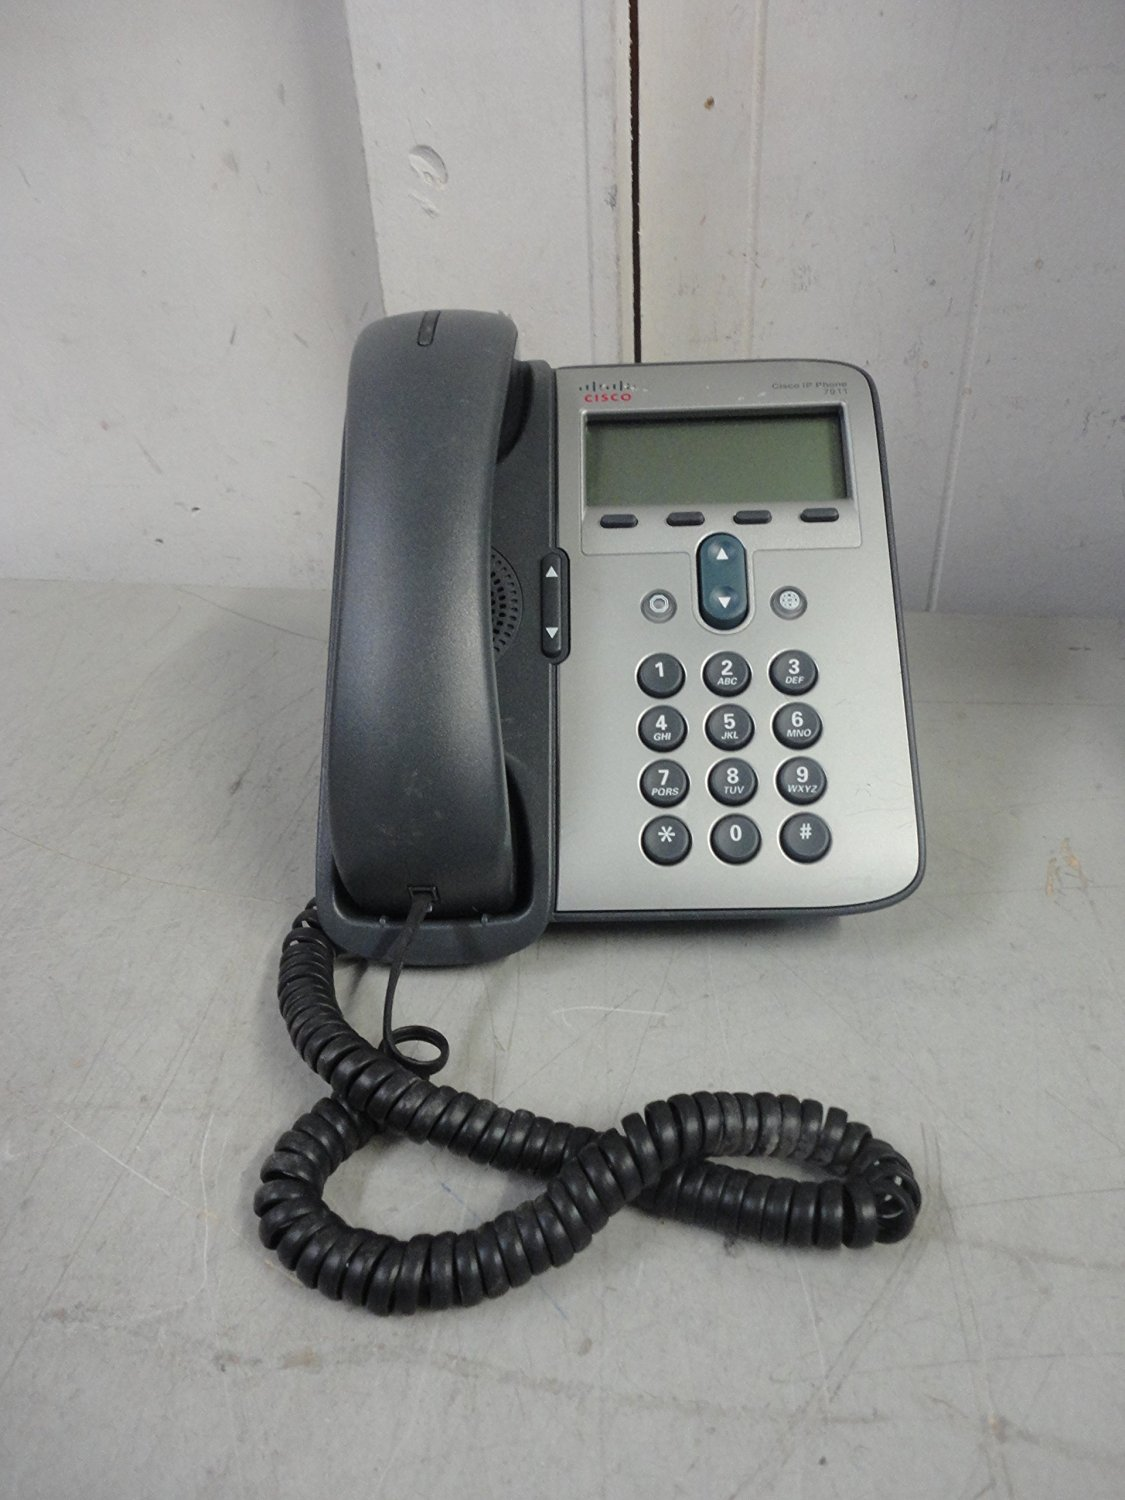 Cheap Ip Phone 7911, find Ip Phone 7911 deals on line at